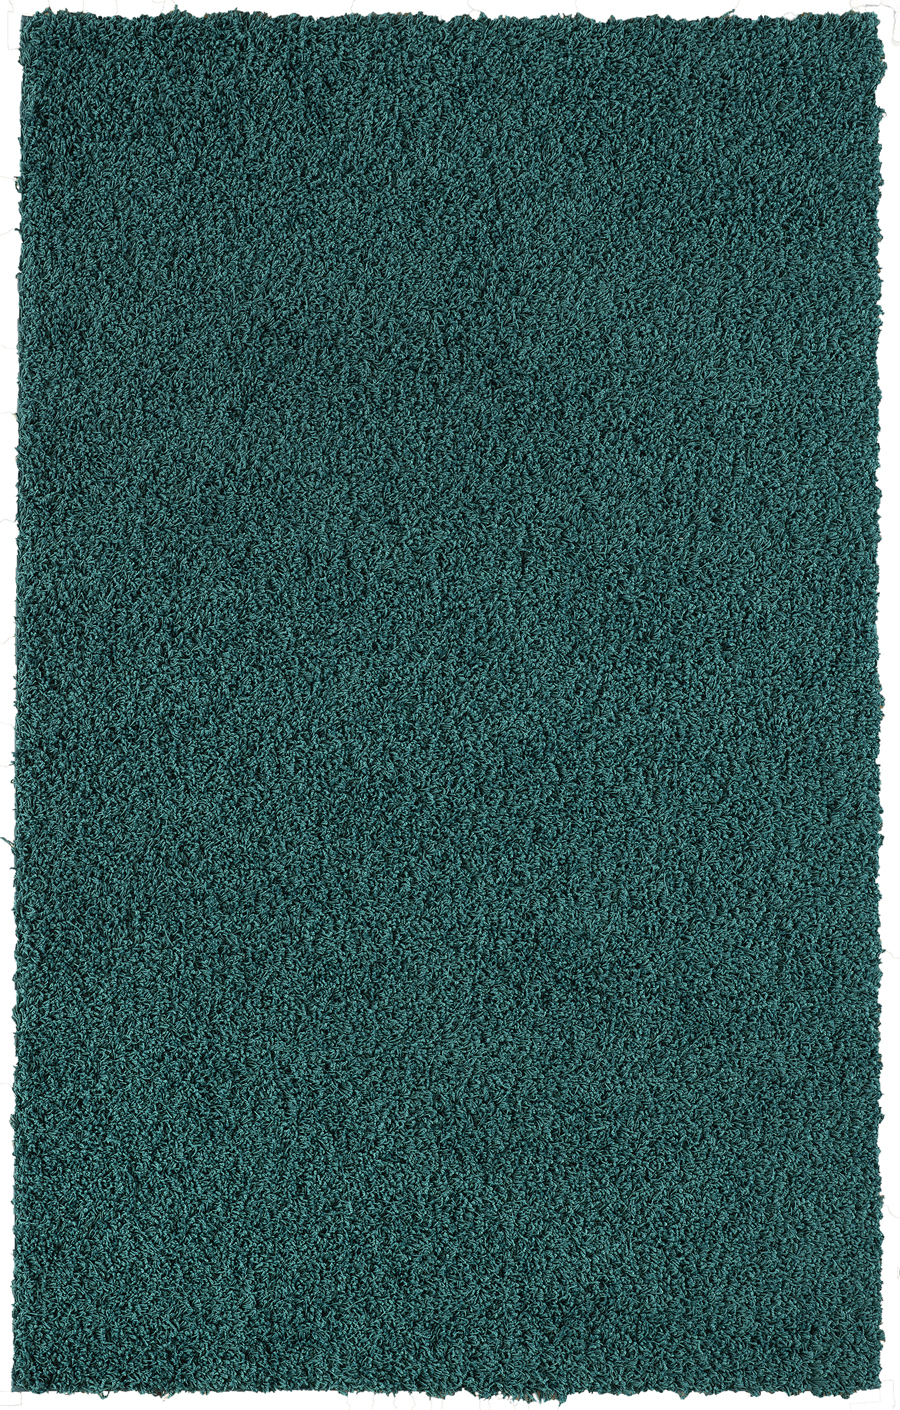 Dalyn Verona Va200 Teal Area Rug